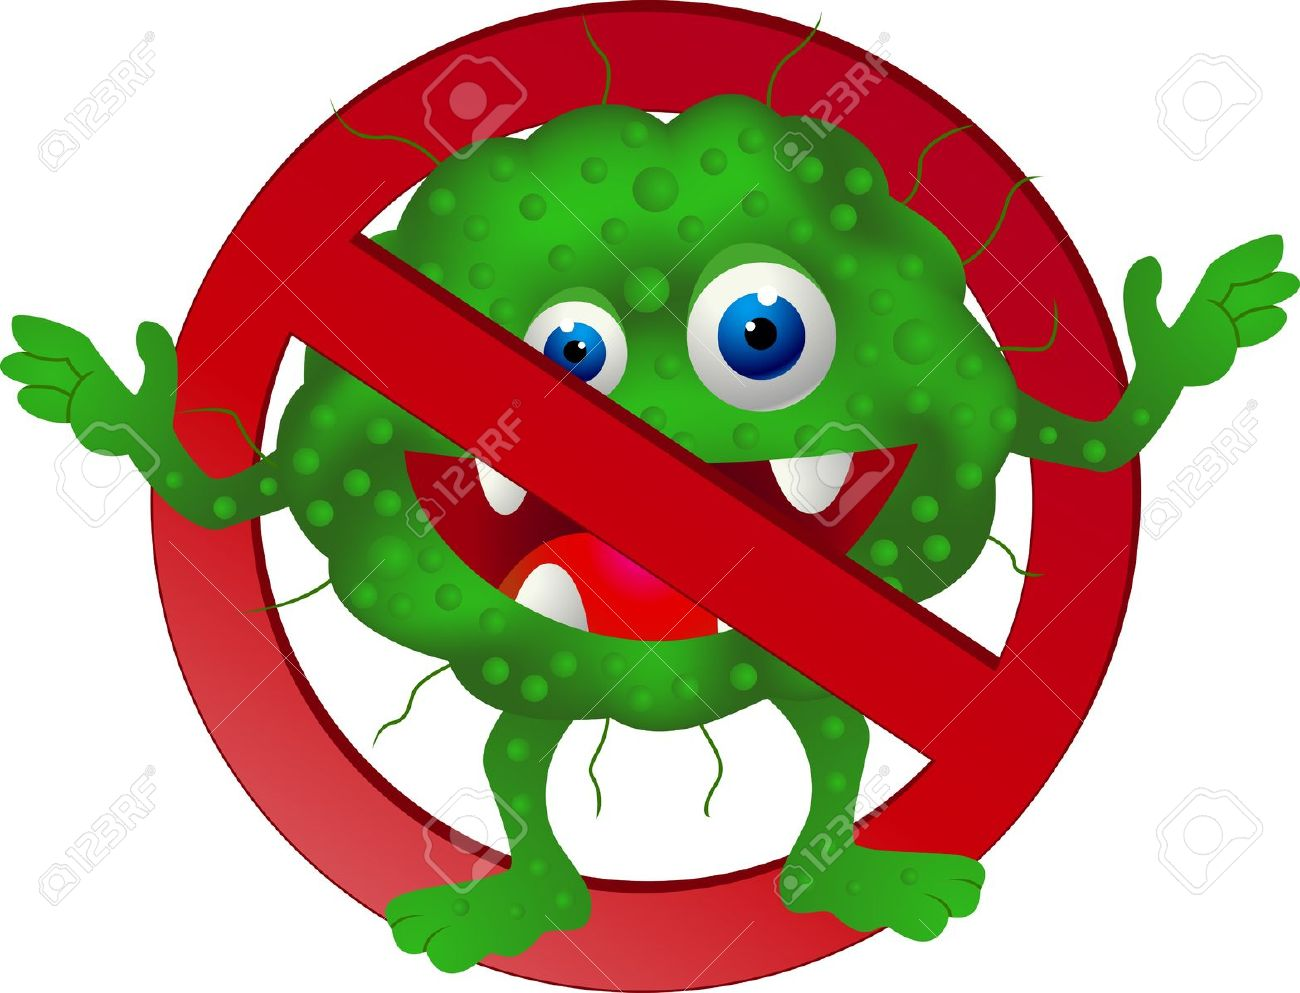 Germs clipart #5, Download drawings